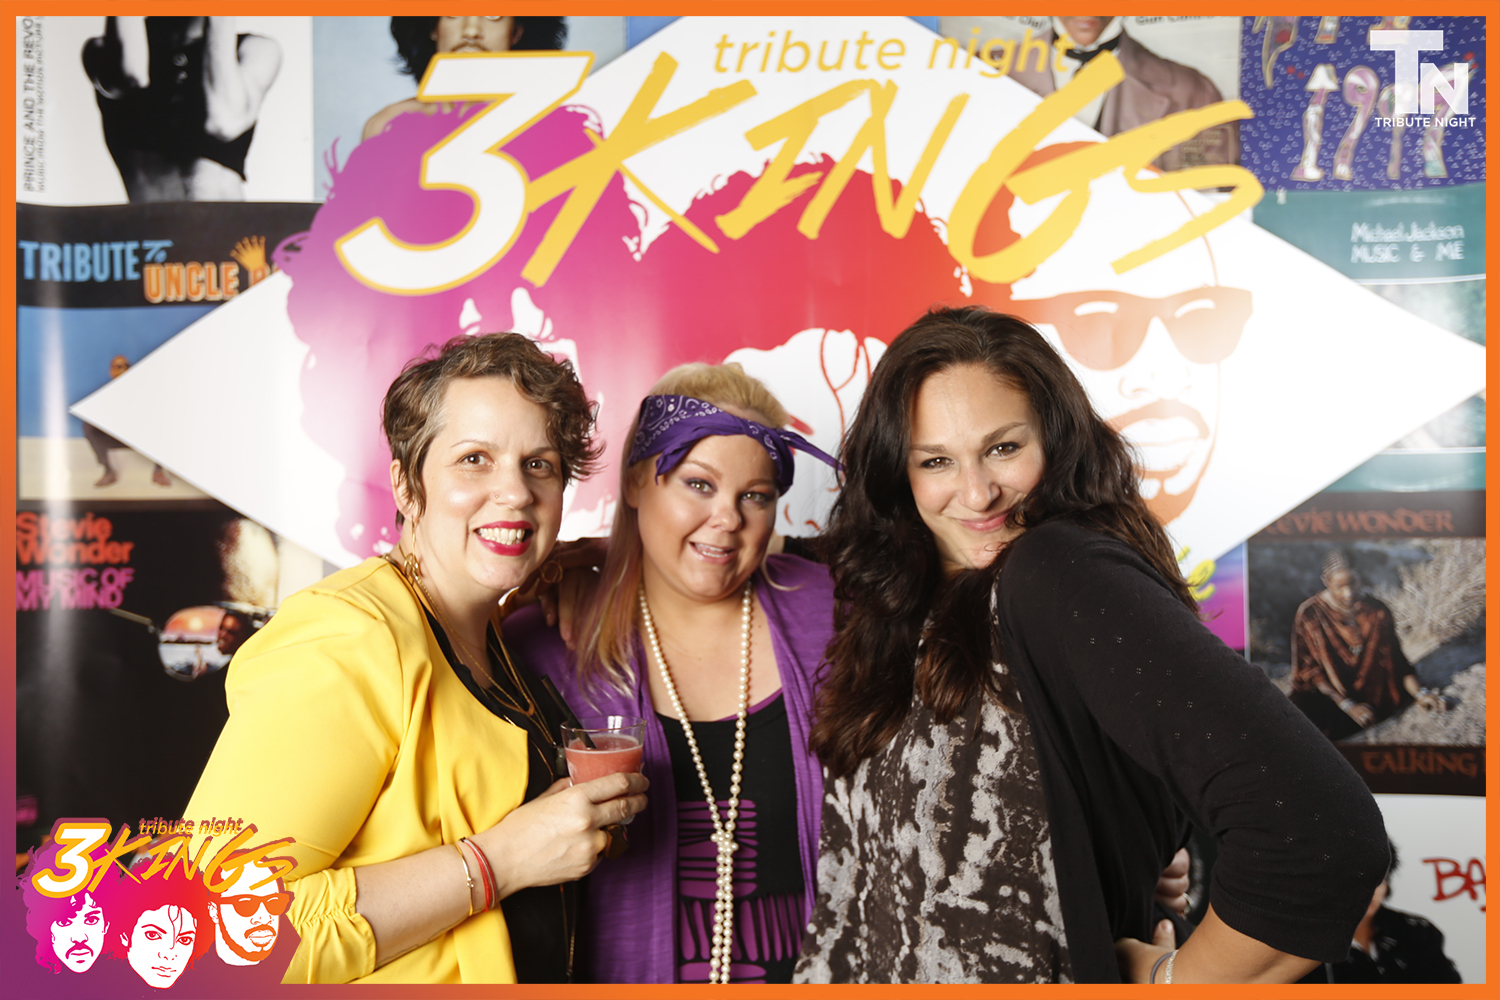 3kings Tribute Night Logo176.jpg